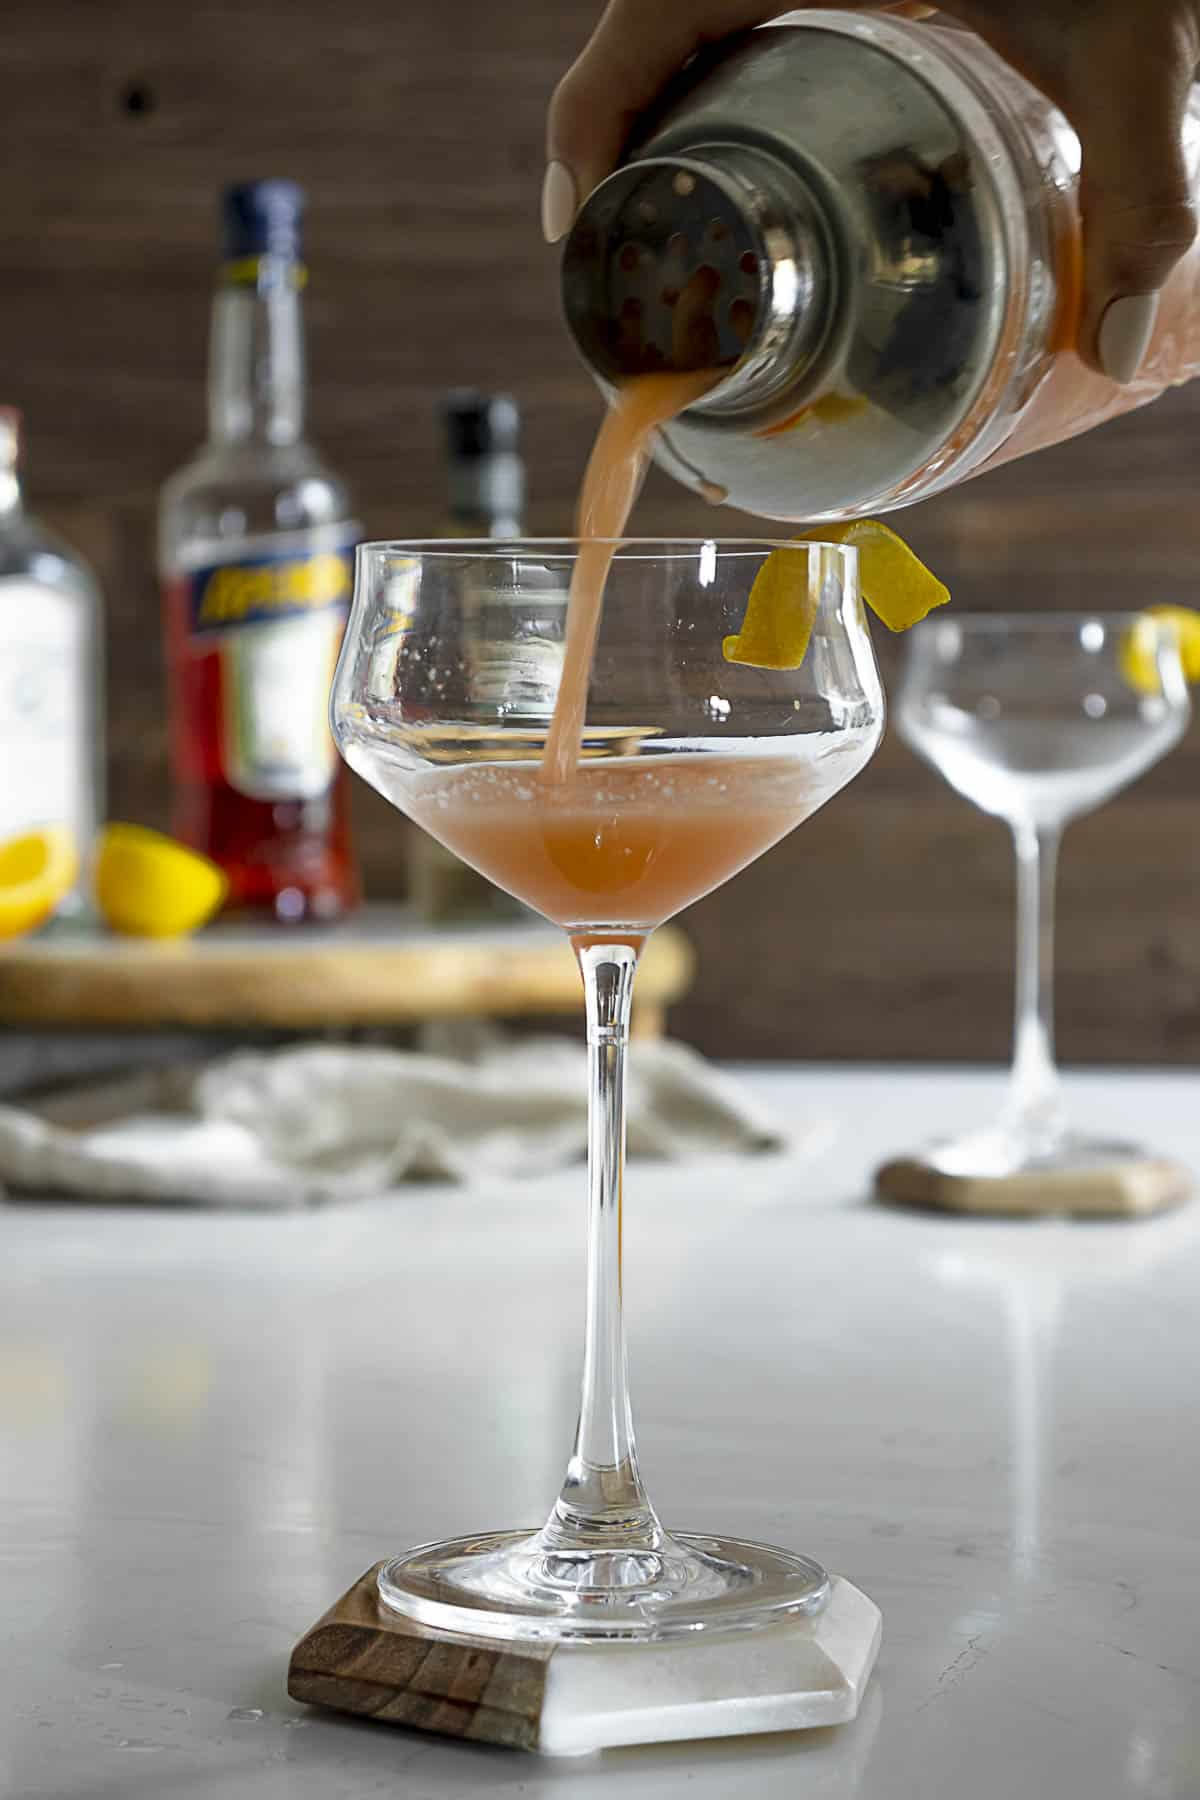 Pouring an Aperol sour with gin into a coupe glass.